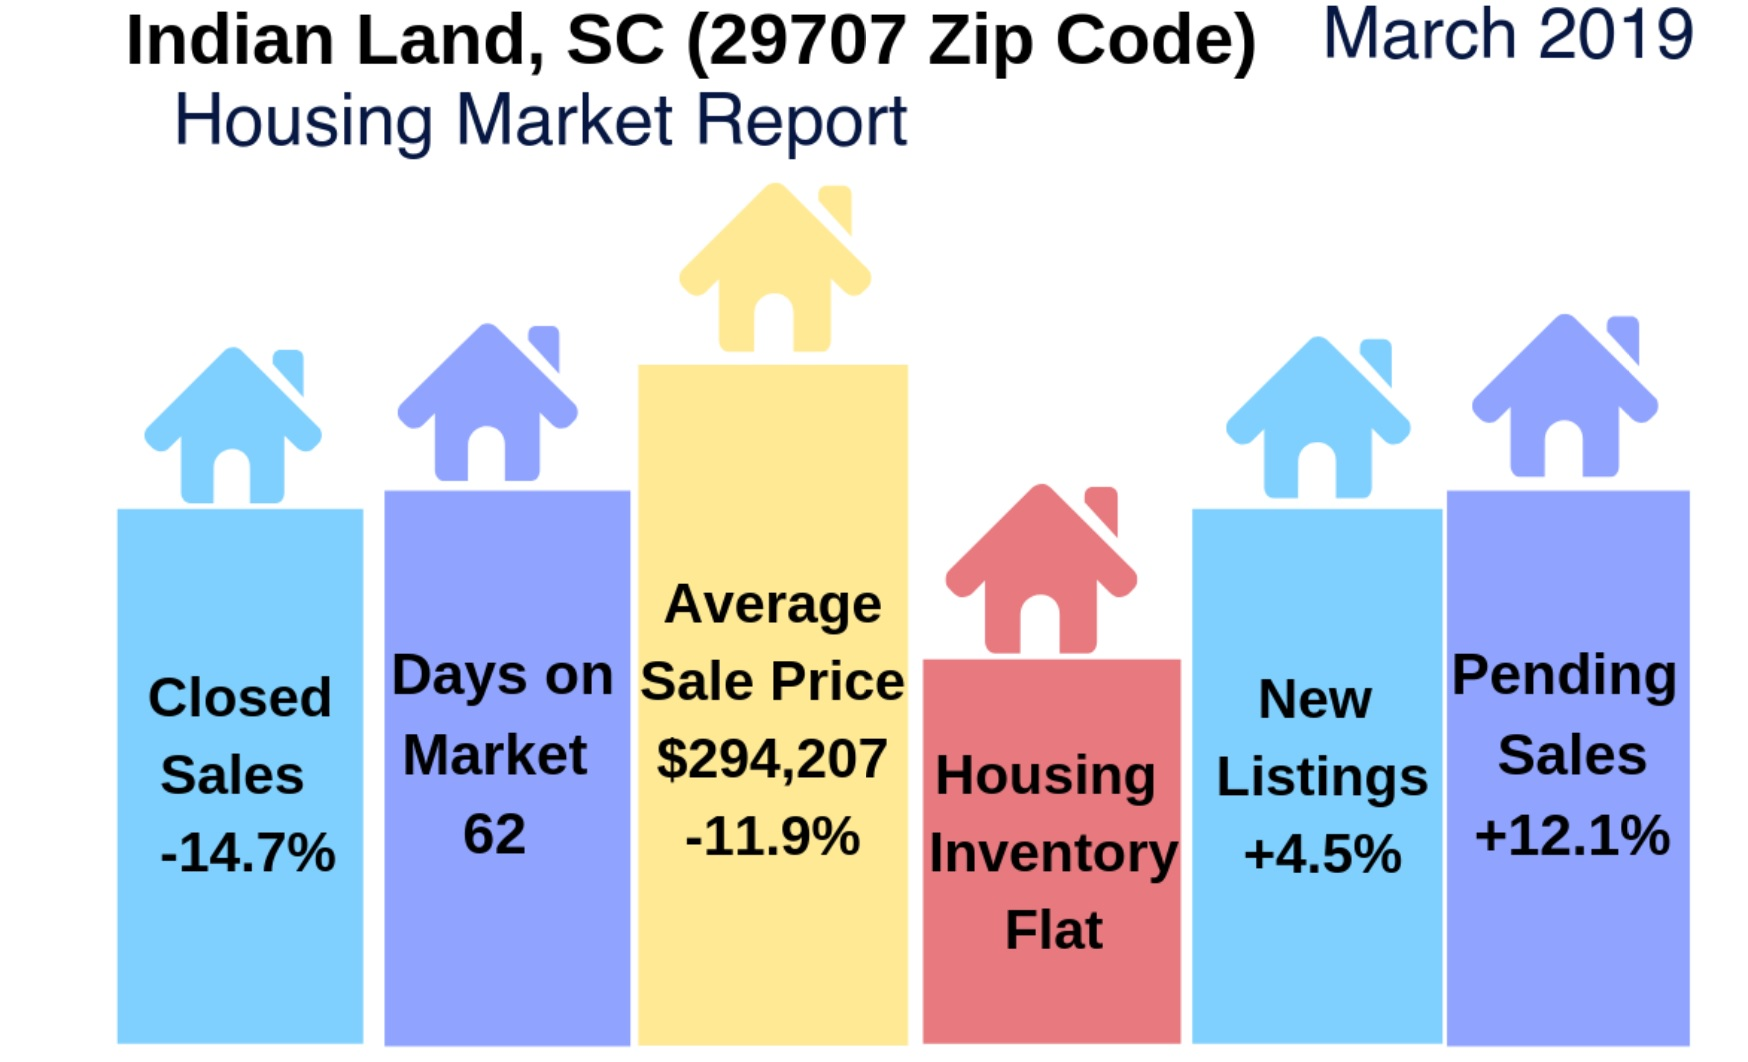 Indian Land, SC (29707) Housing Market Update & Video: March 2019